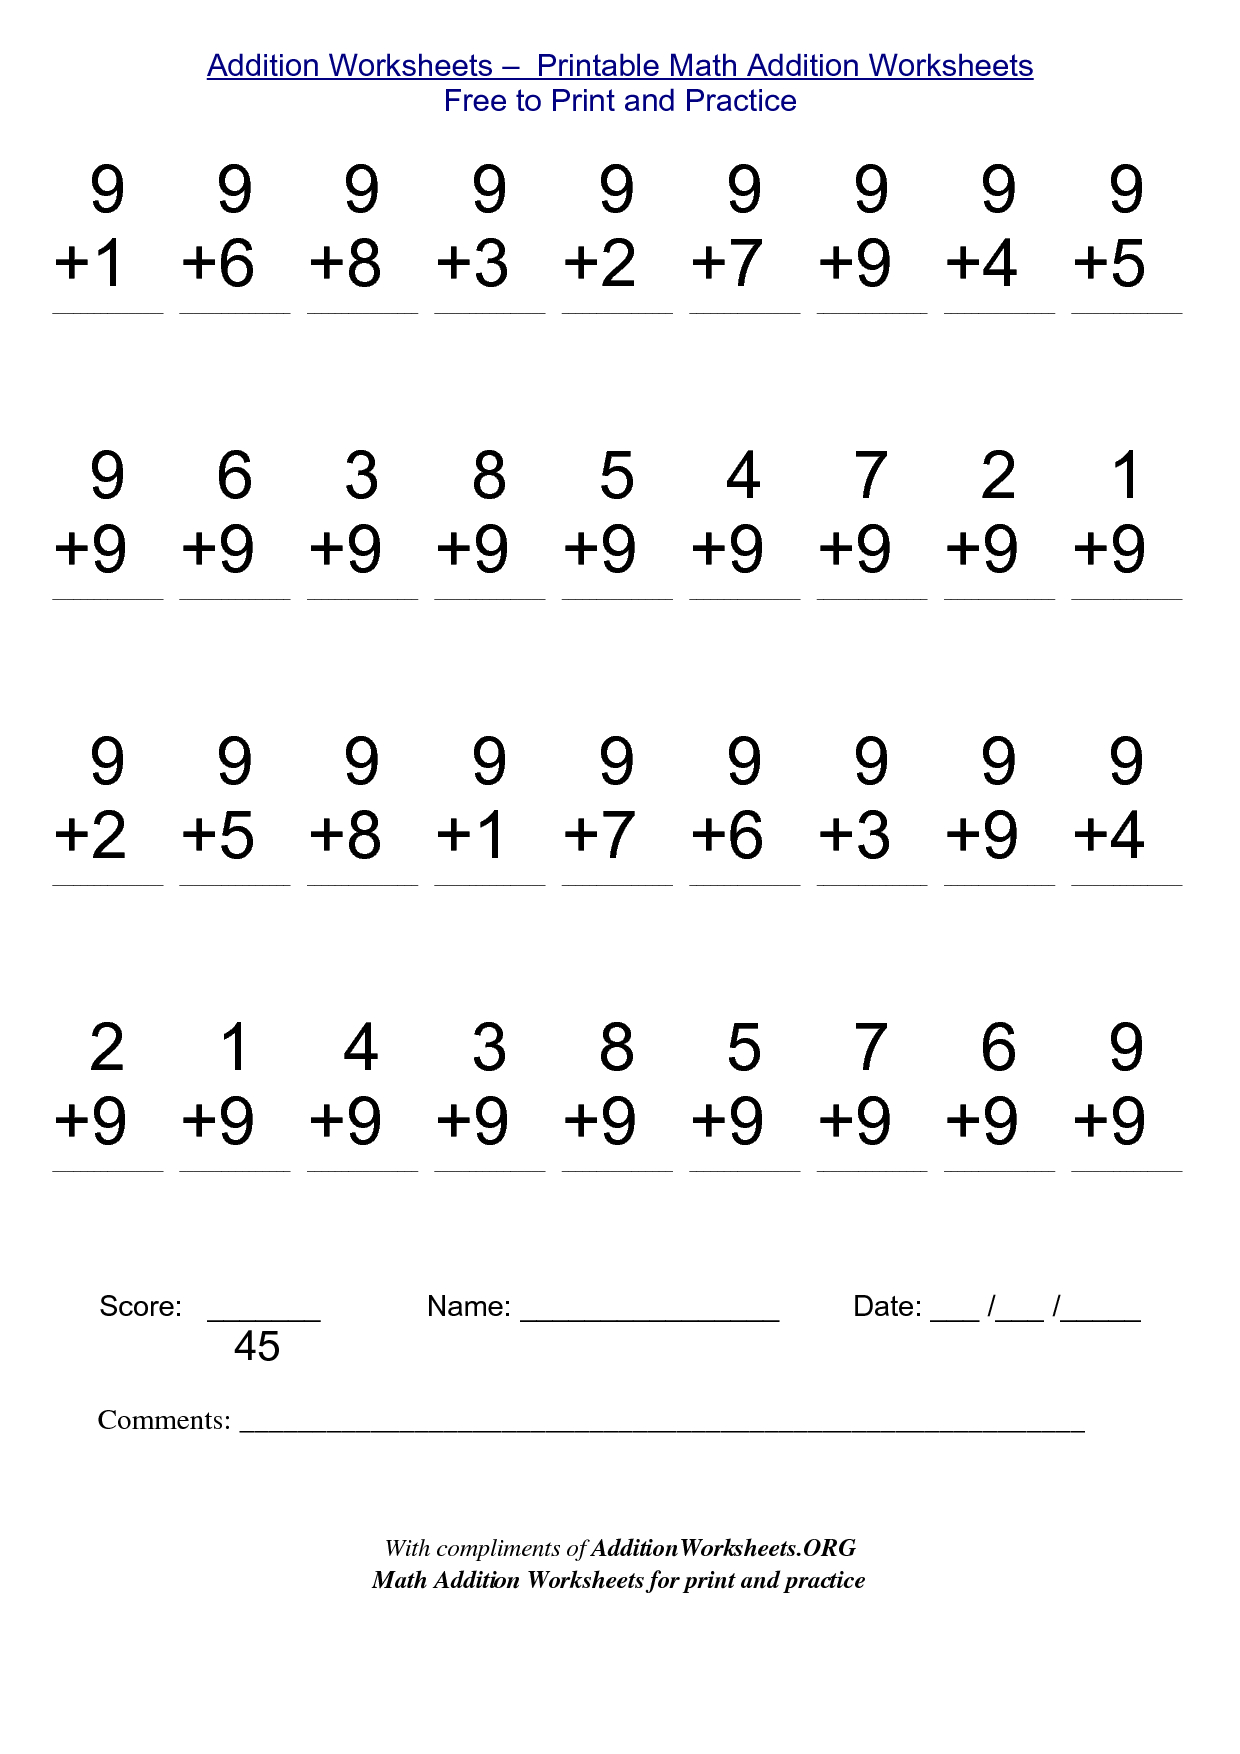 2Nd Grade Stuff To Print | Addition Worksheets - Printable Math - Free Printable Math Worksheets For 2Nd Grade